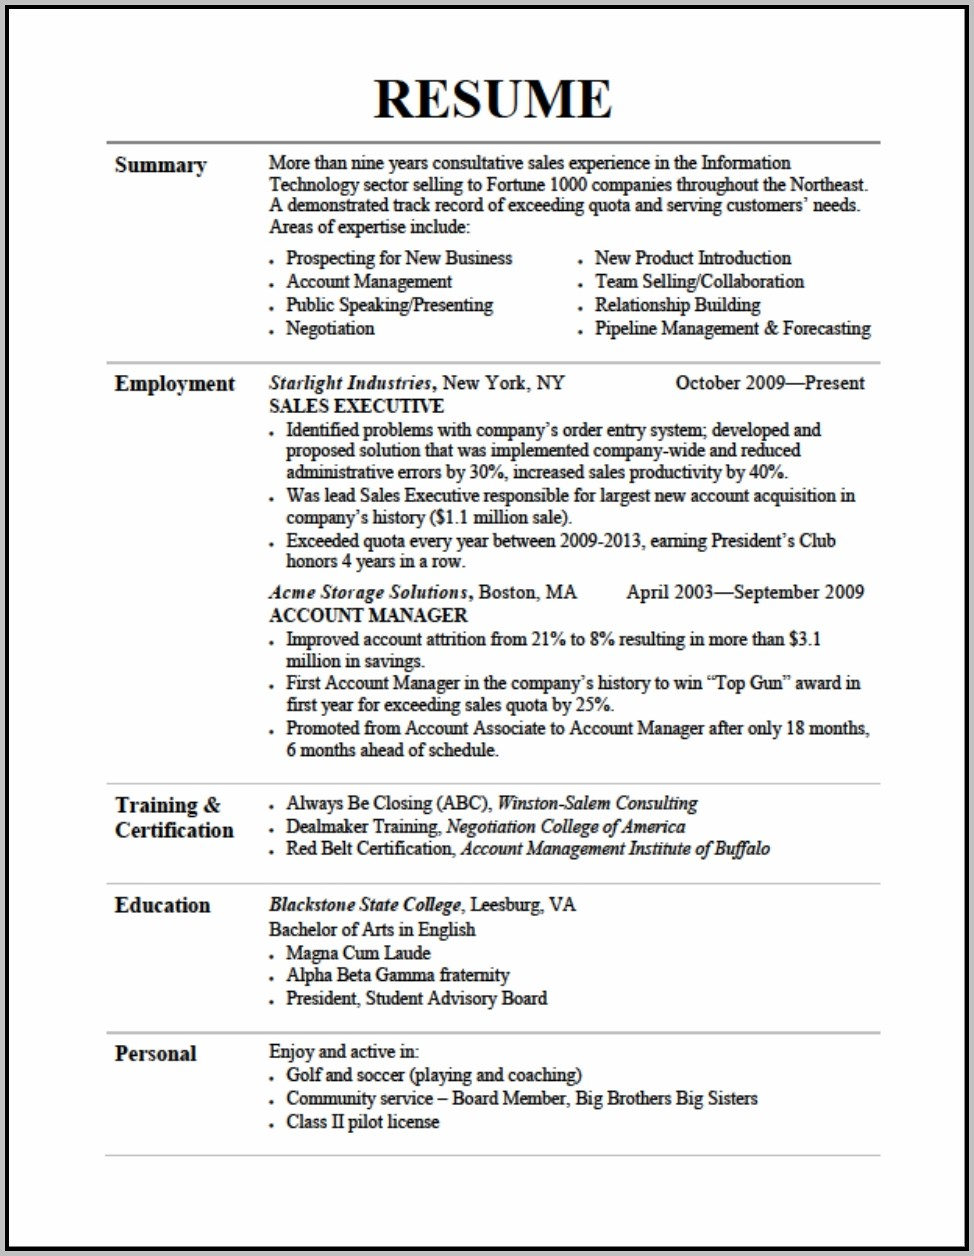 Tips On Resume Resume Layout Tips Cv Advice Layout Best In 81 Mesmerizing Best Resume Ever